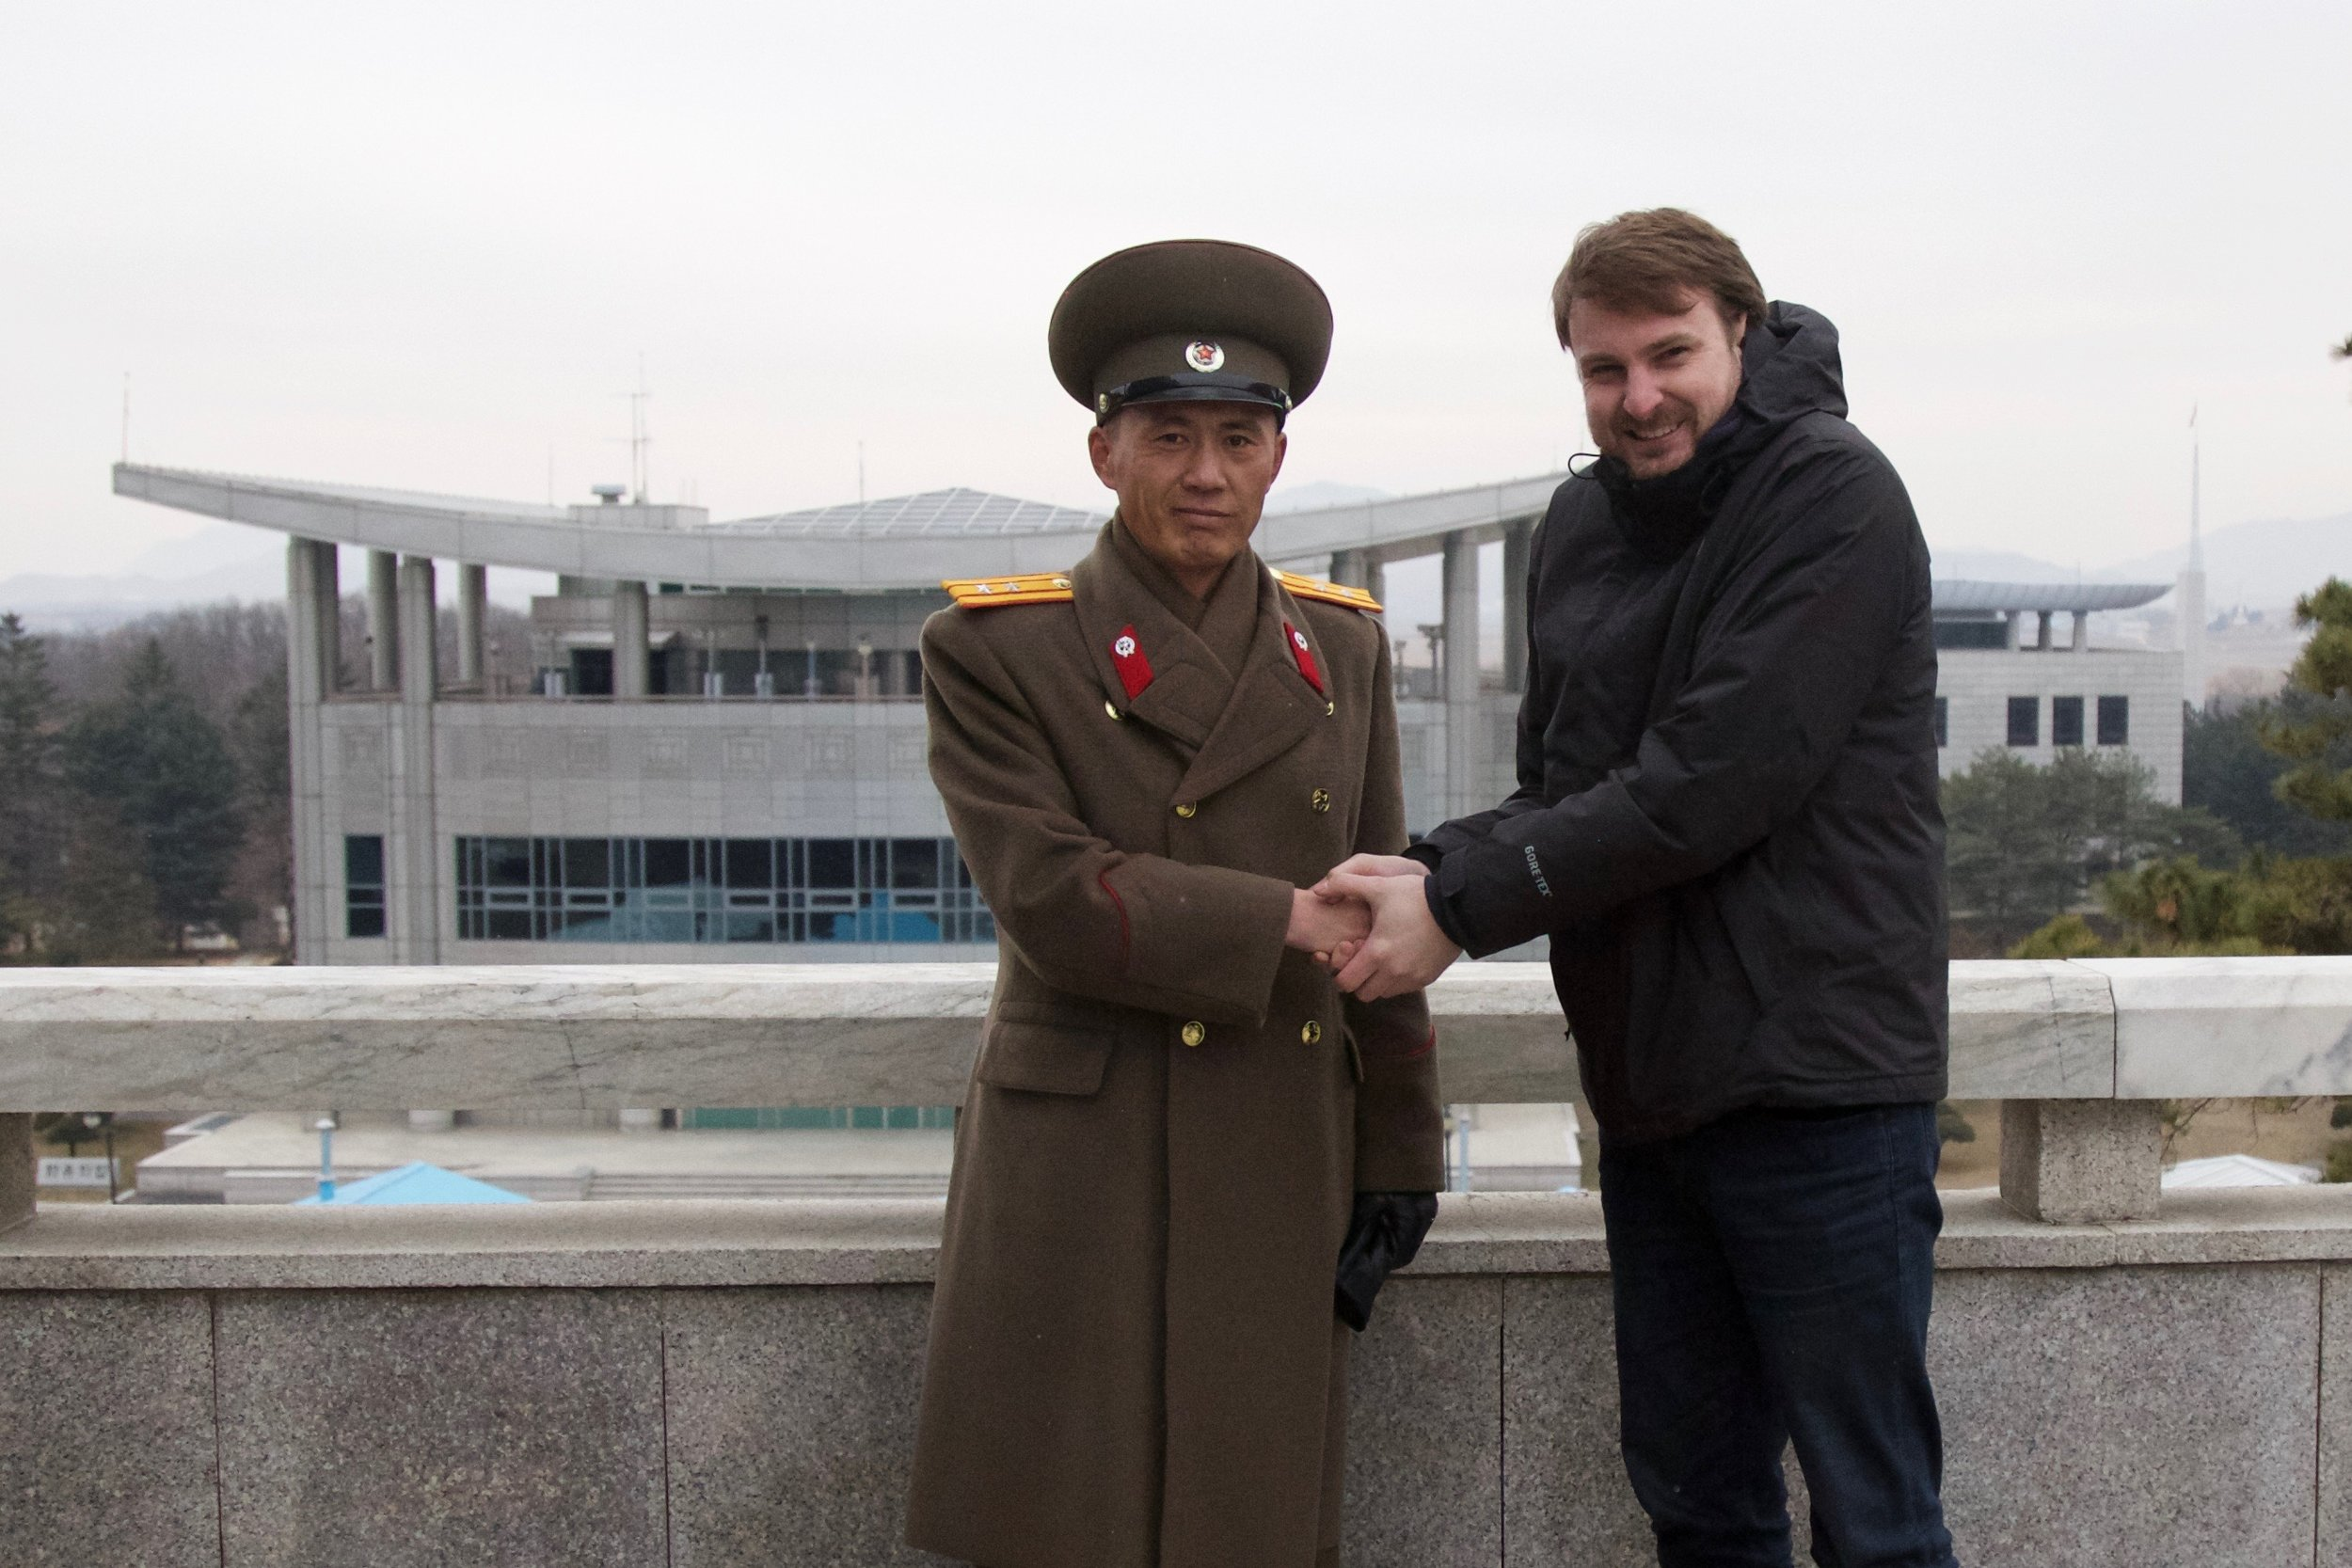 DMZ, North Korea